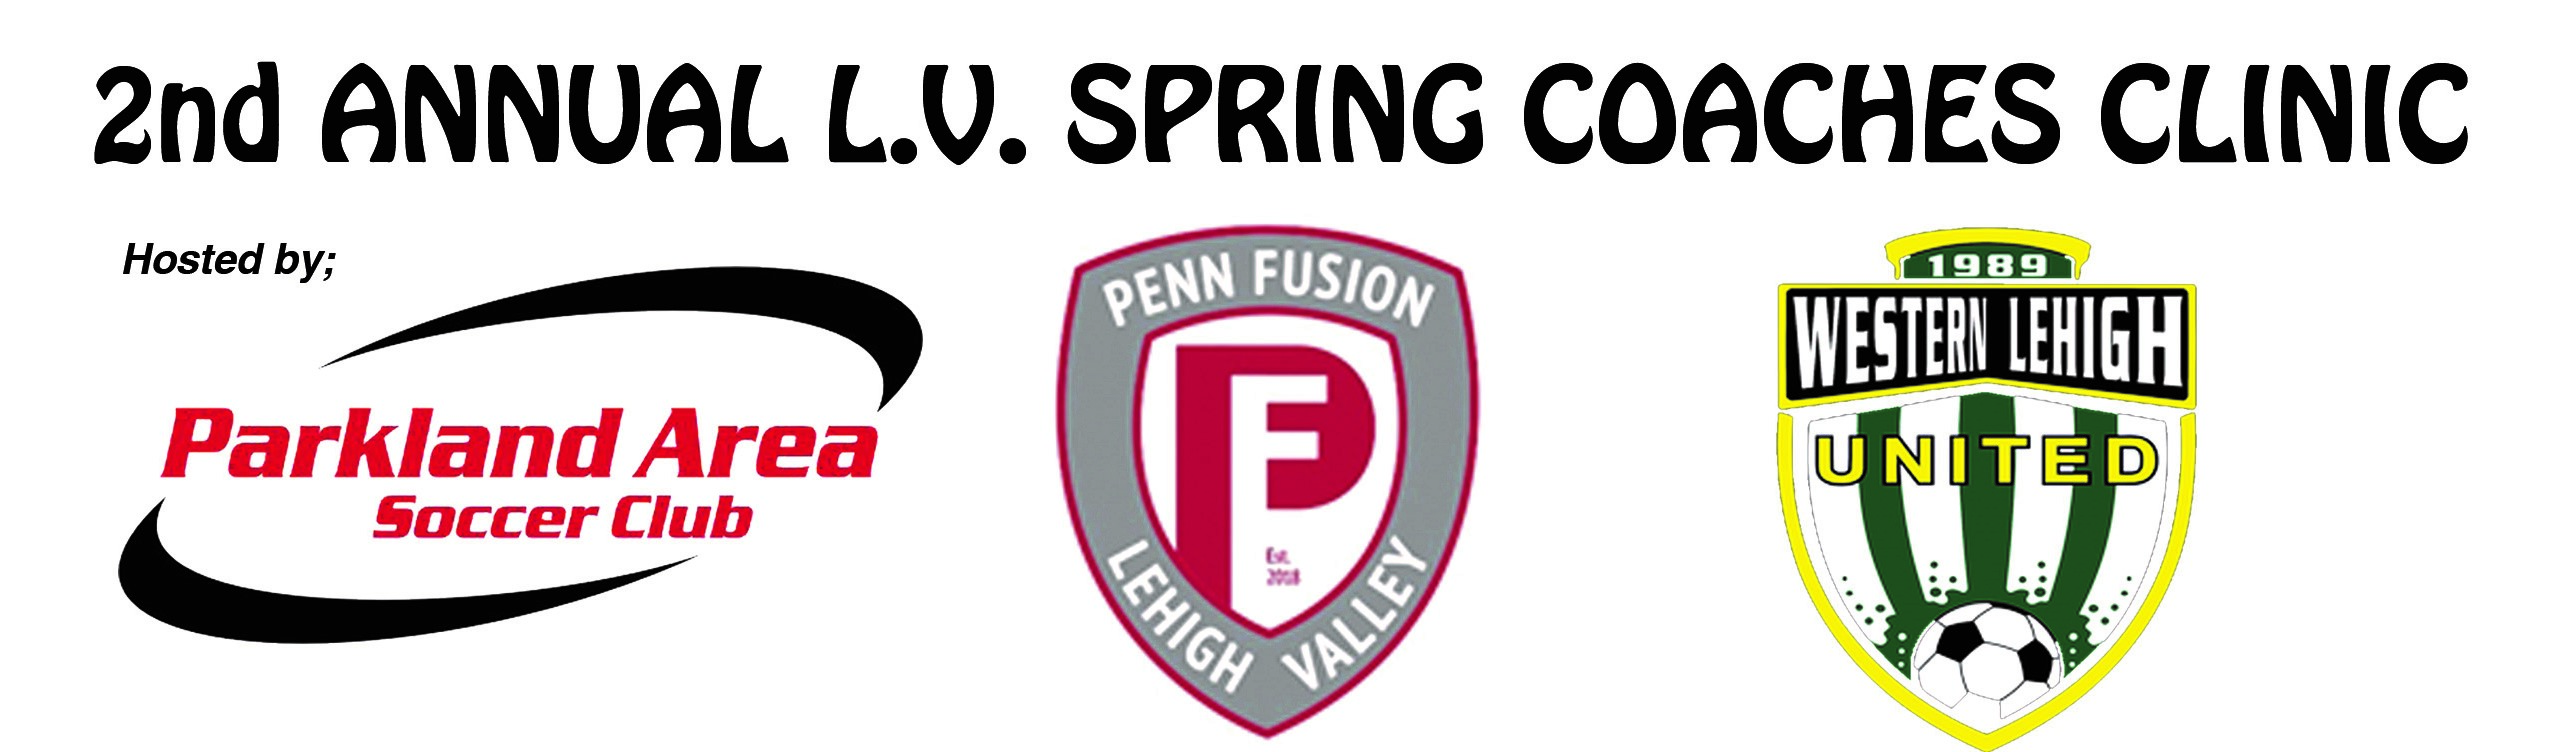 2nd Annual L.V. Spring Coaches Clinic